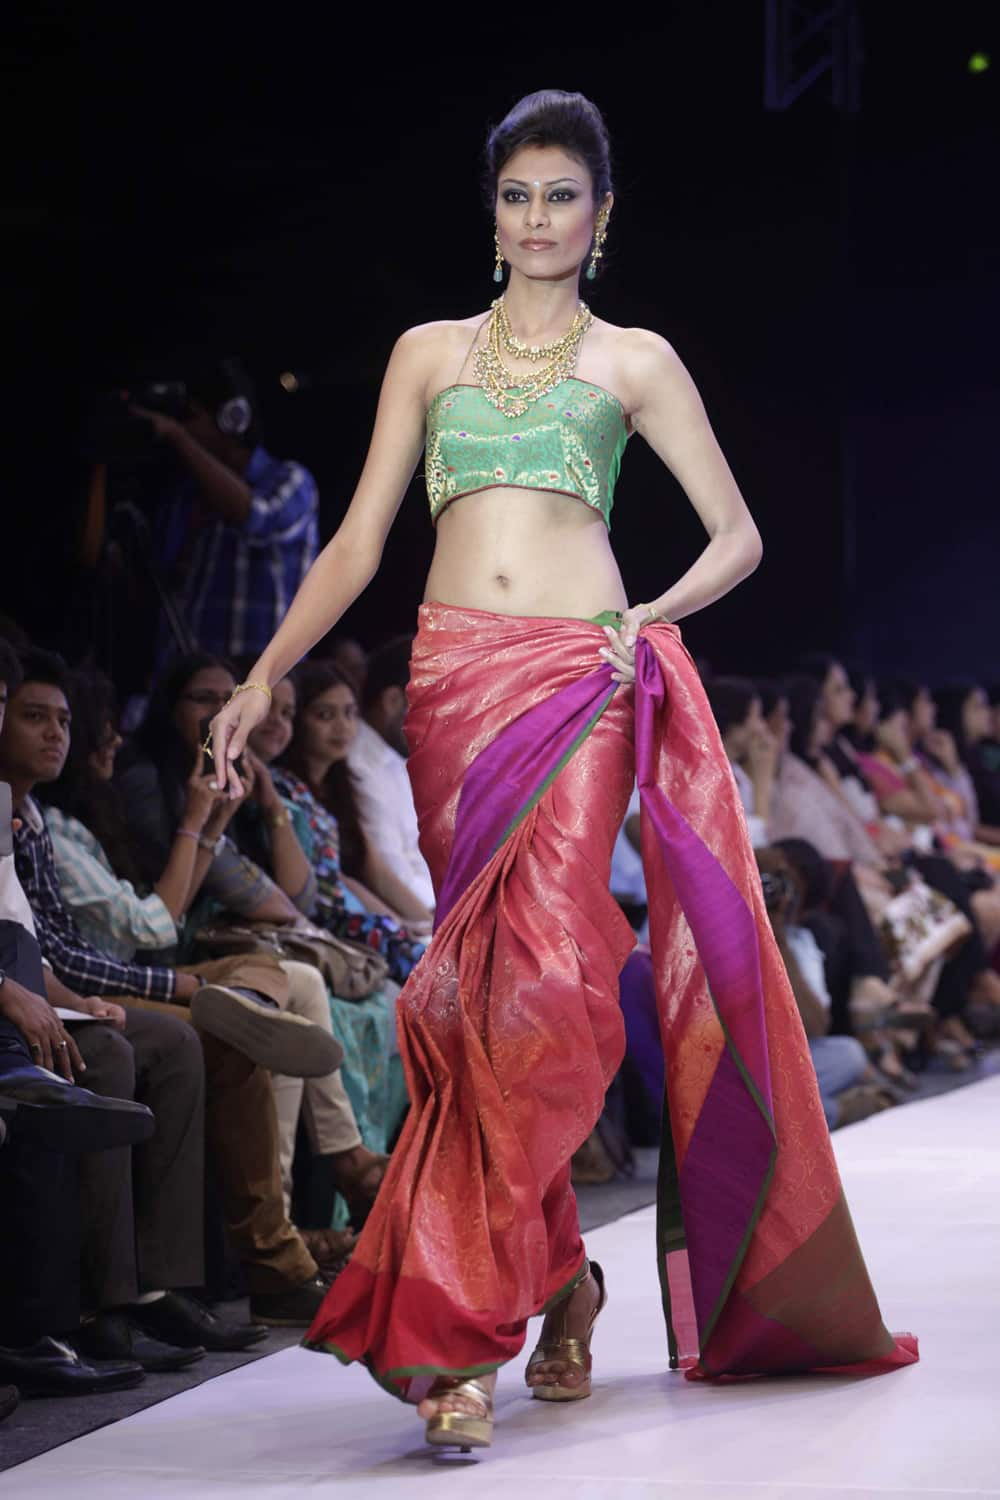 A model displays a creation by Niti Mehta during the India Jewellery and Fashion Week (IJFW) in Ahmadabad.